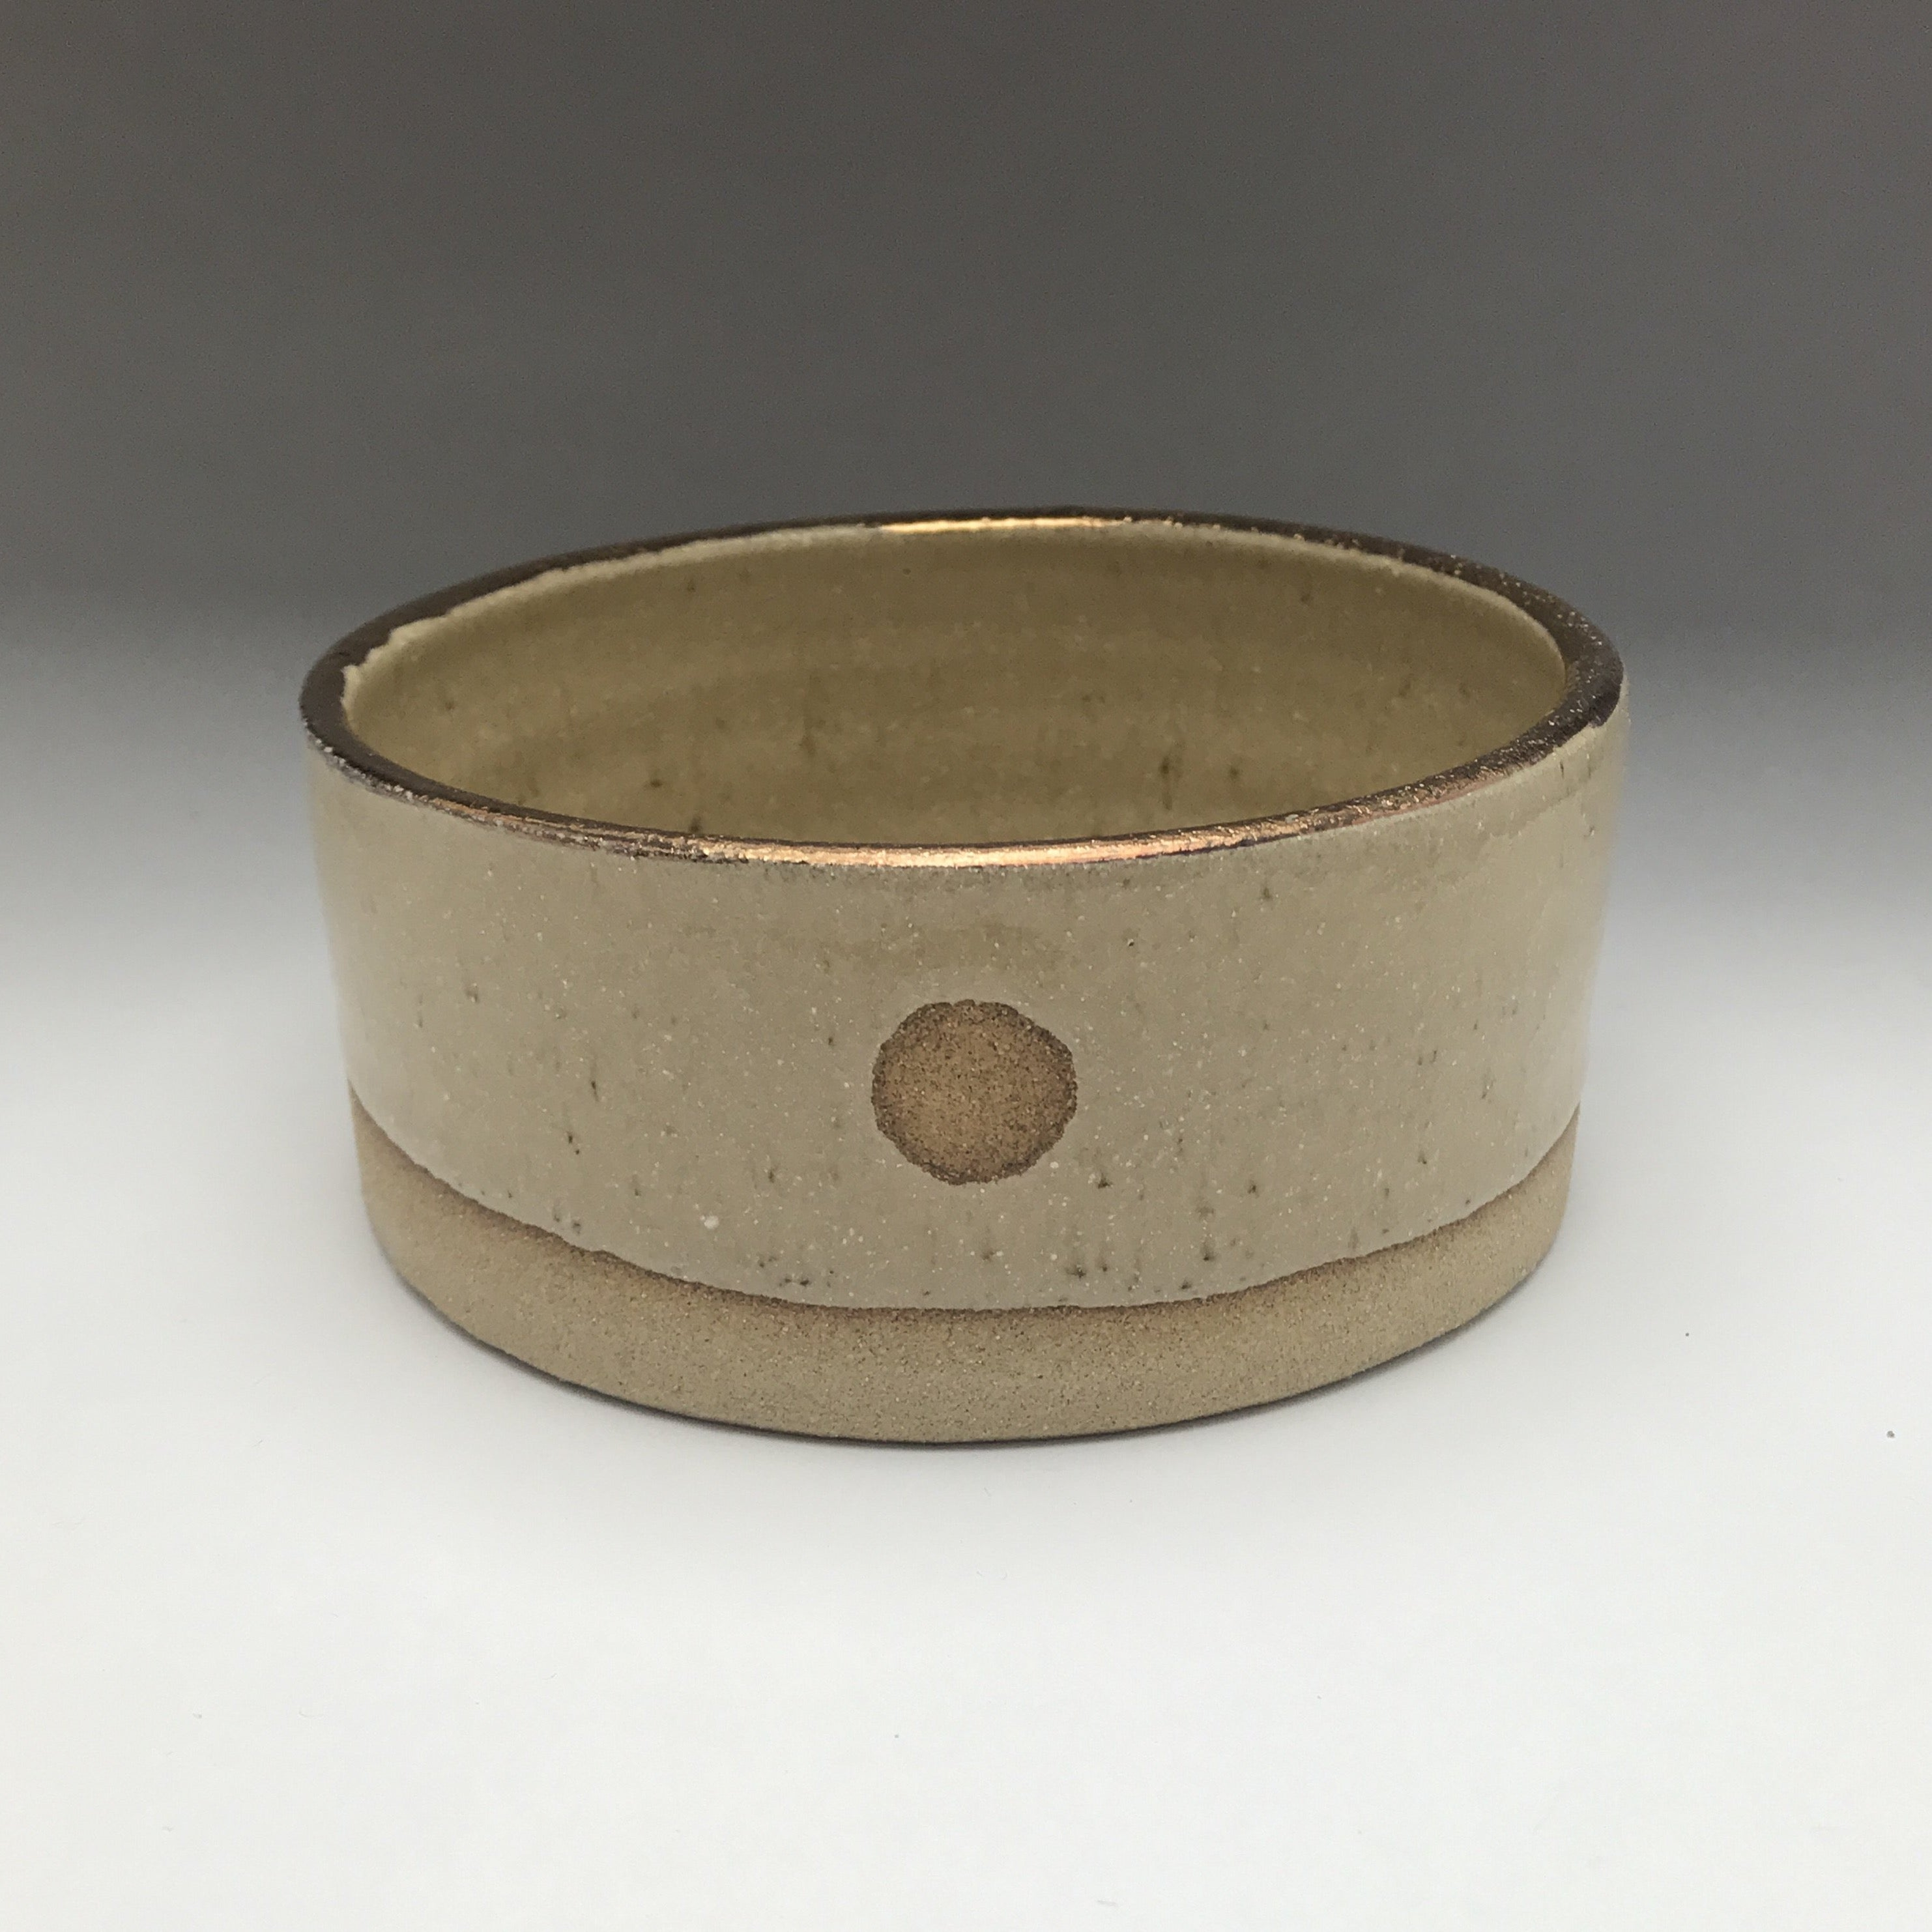 cylinder shaped ceramic dish with bare clay, creamy beige glaze, circle accent detail and real gold accent on the rim.